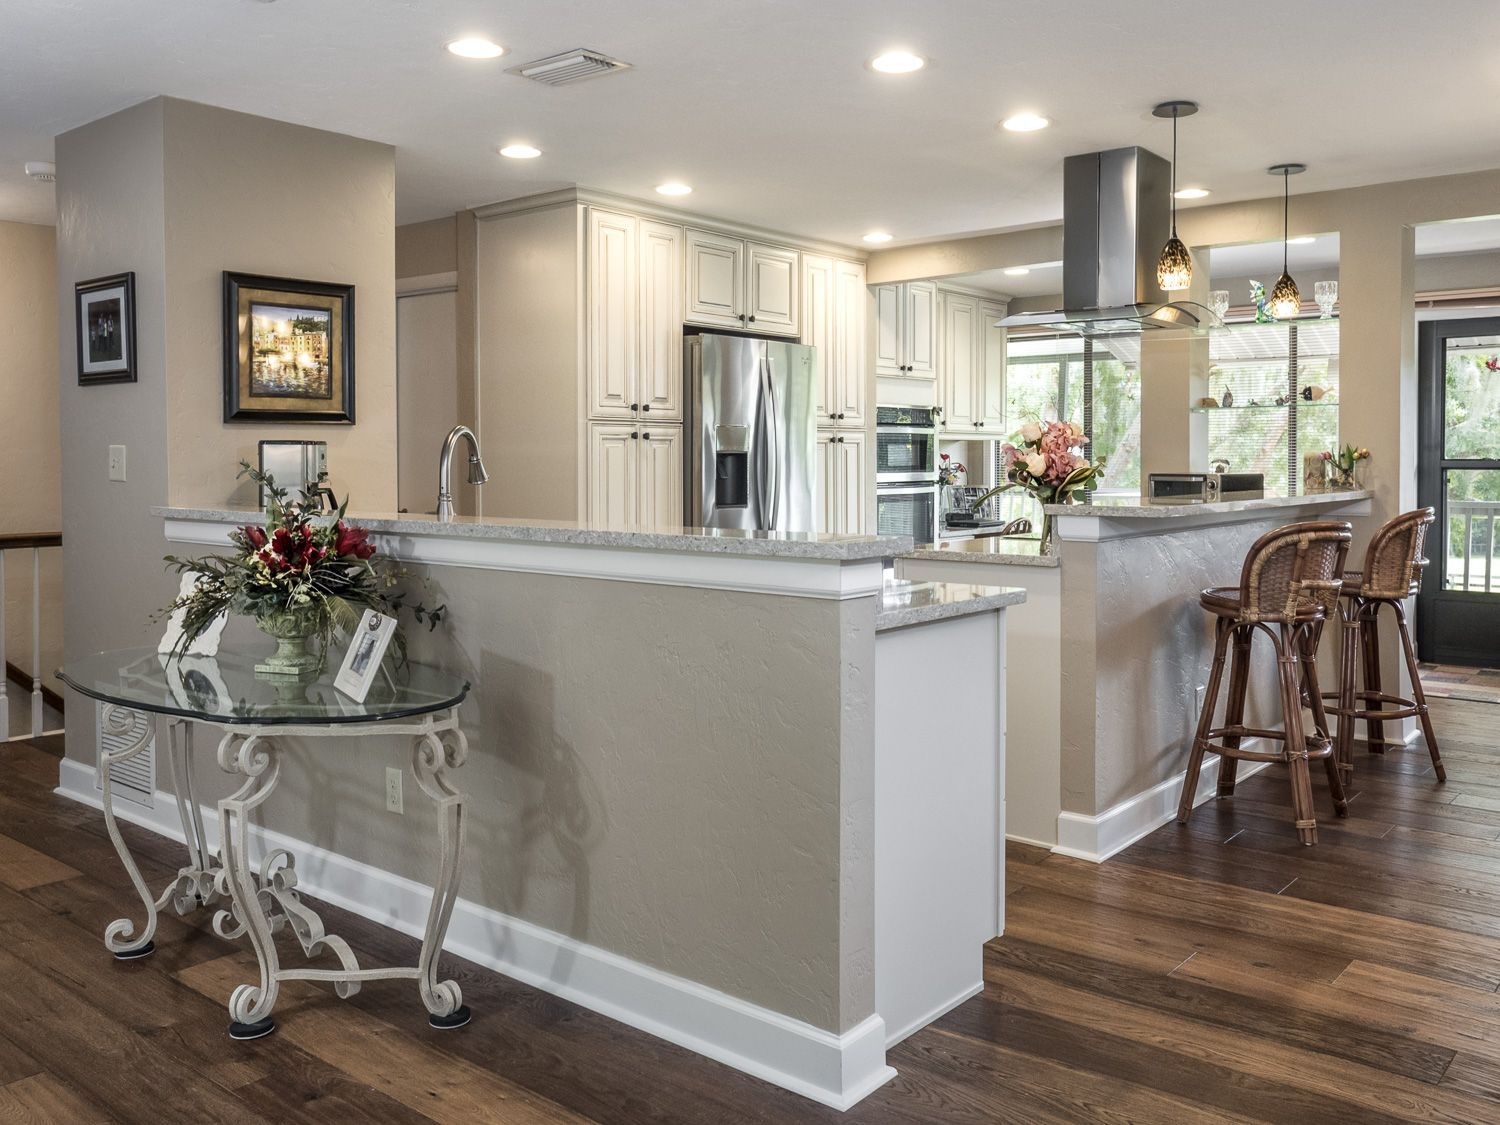 Open Kitchen In Cream Colored Cabinets Wood Floors Stainless